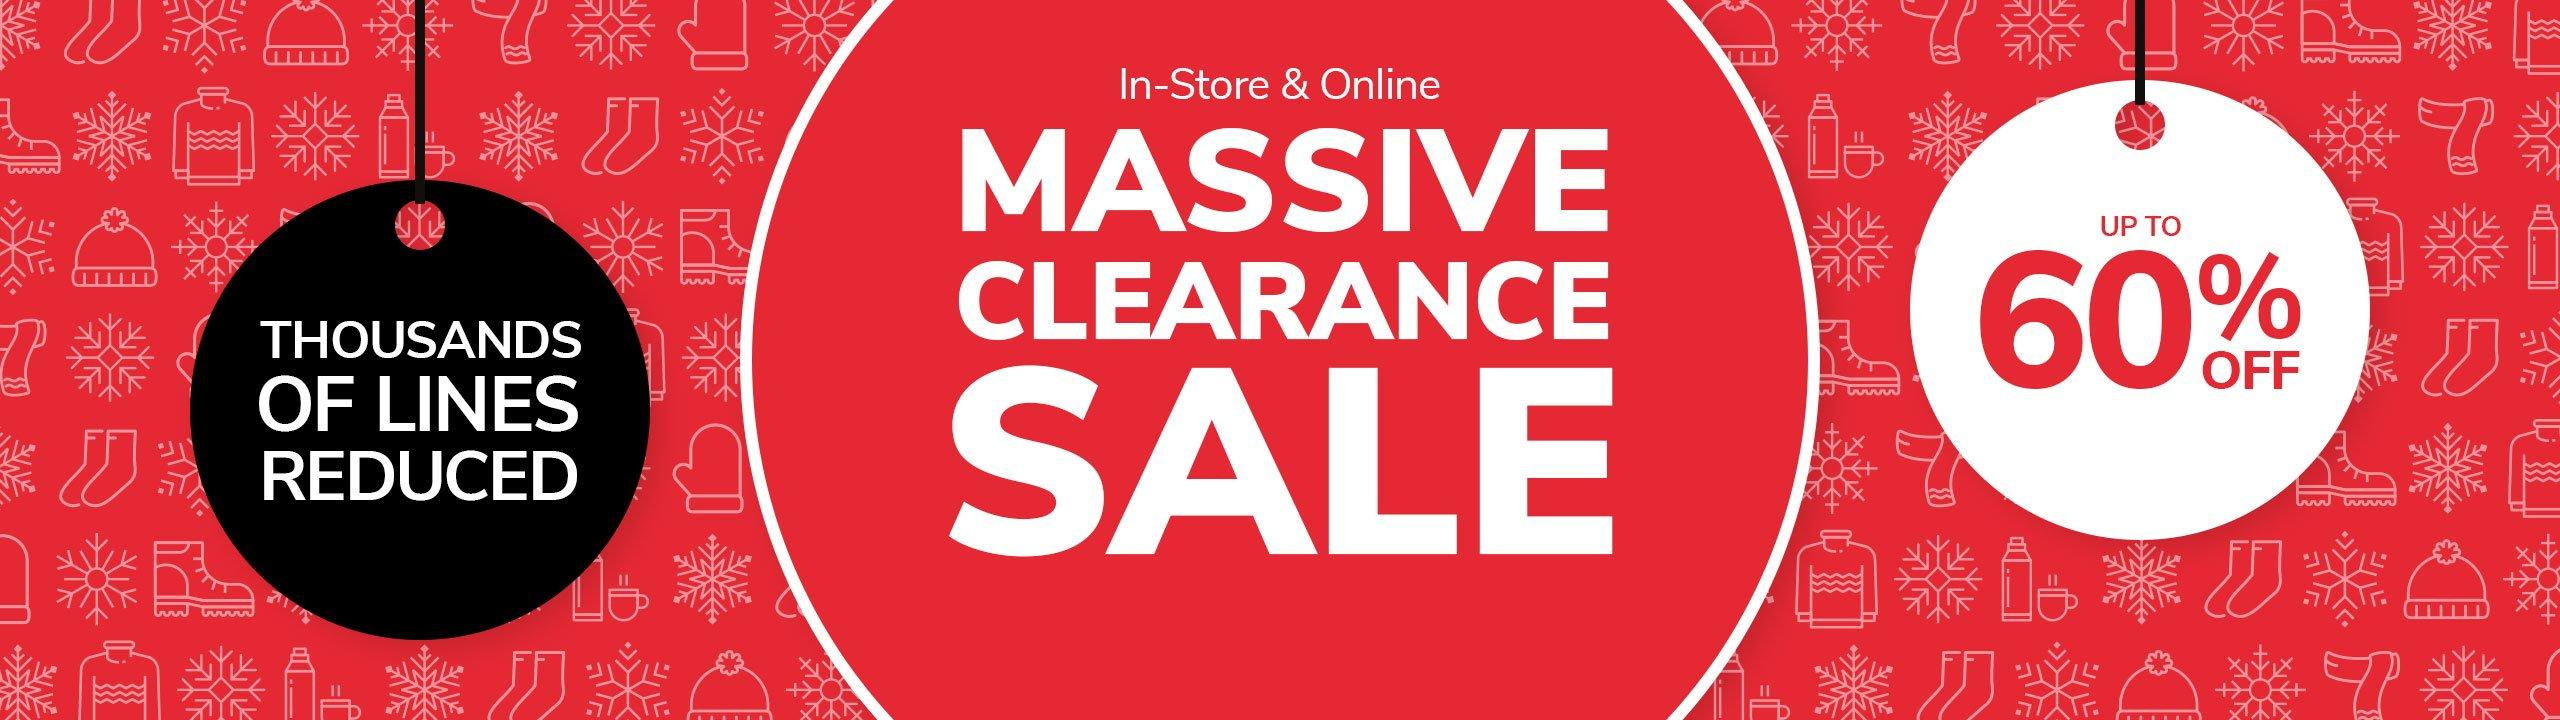 Massive Clearance Sale – Up To 60% Off